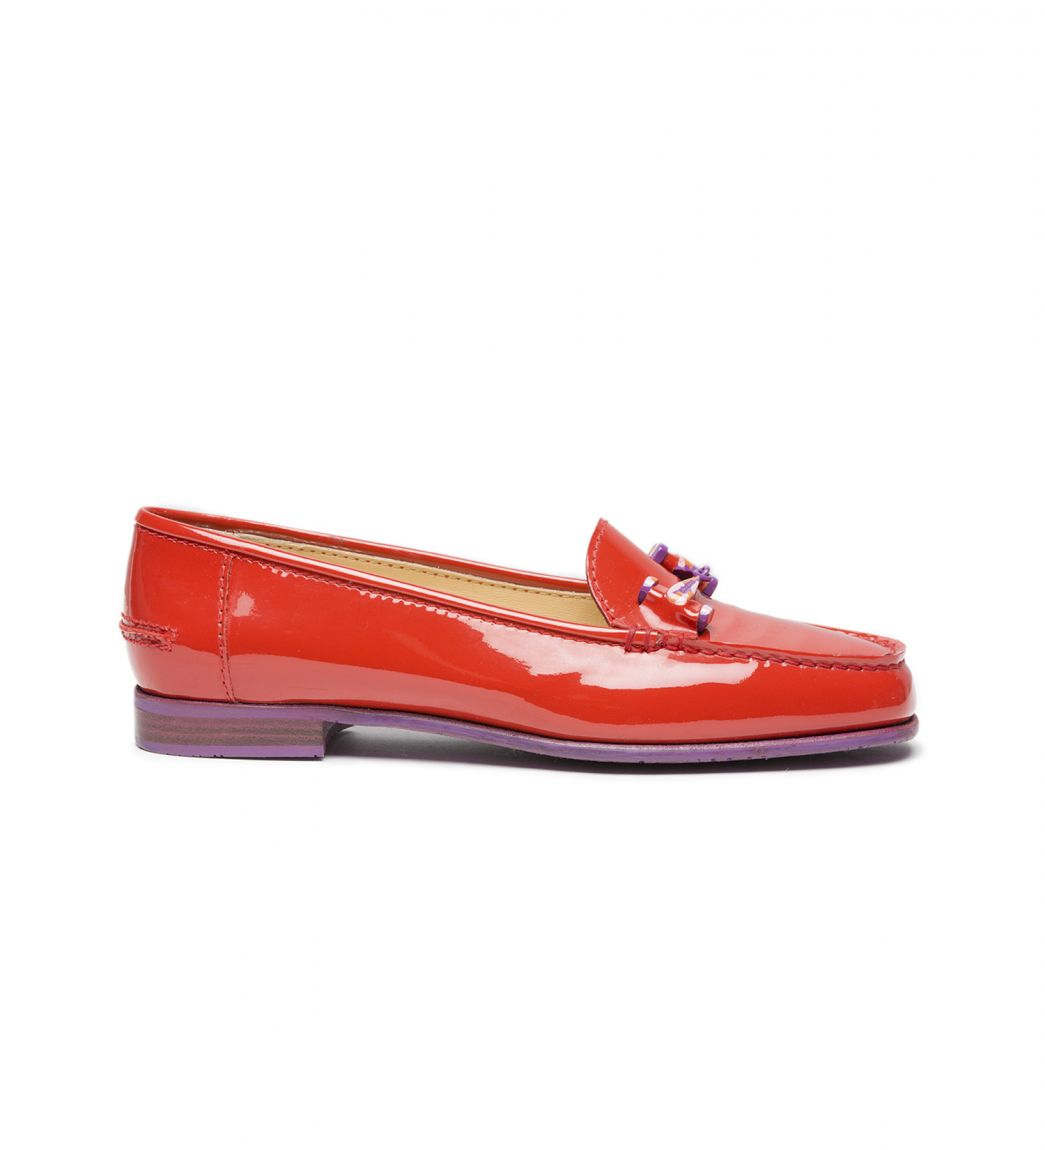 loafer-red-testoni_f02546-hol-98829-q0a_01.jpg